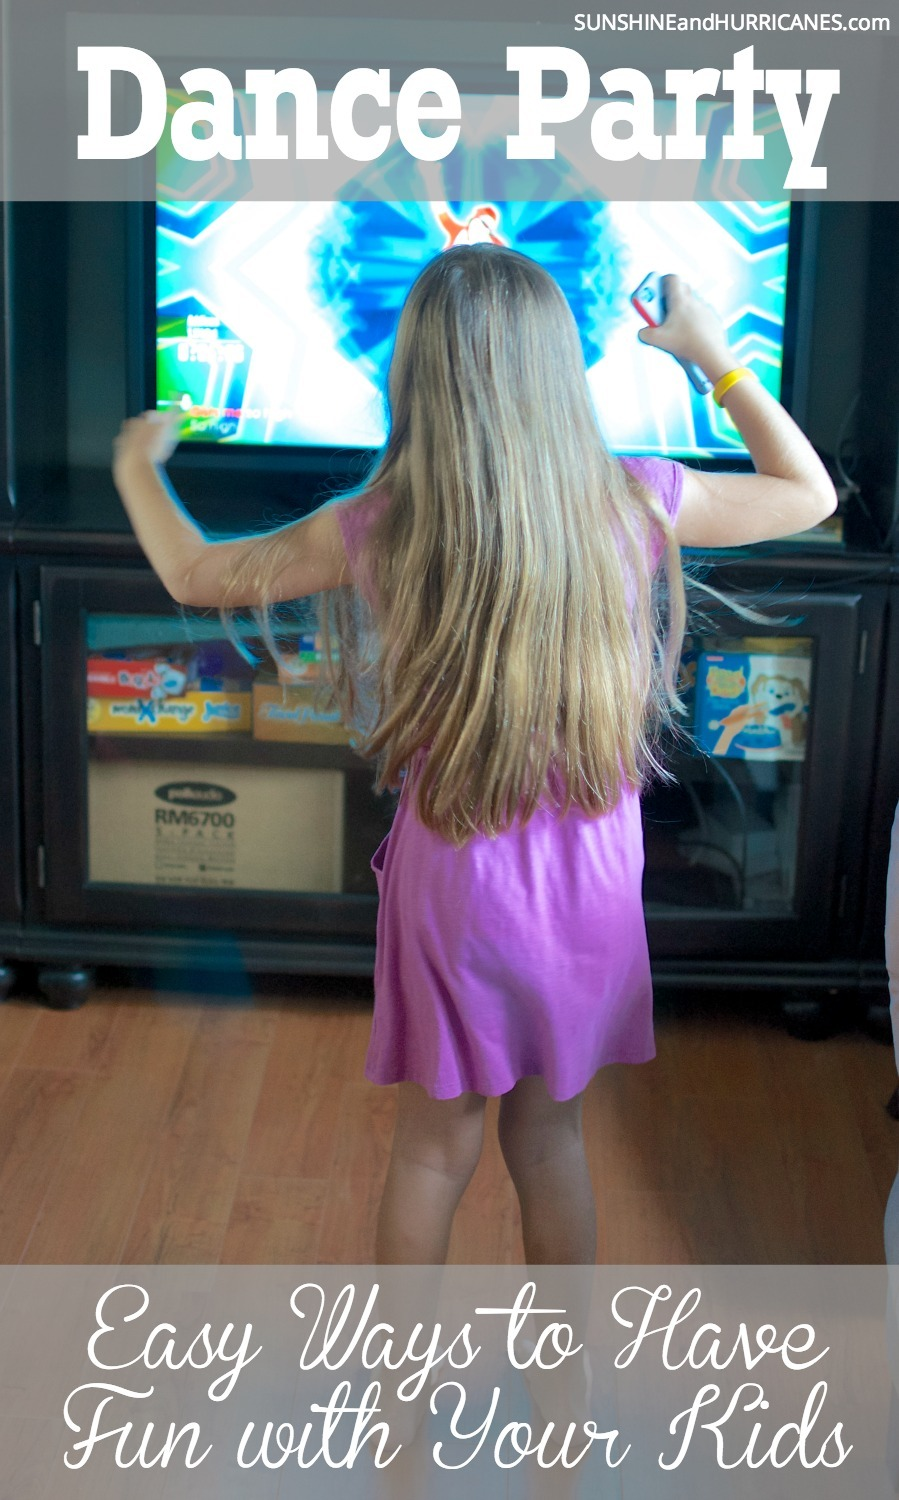 Looking for an easy way to have fun with your kids? Have a family dance party! It's a great way to burn off energy, get some exercise and just have a good time together as a family. SunshineandHurricanes.com